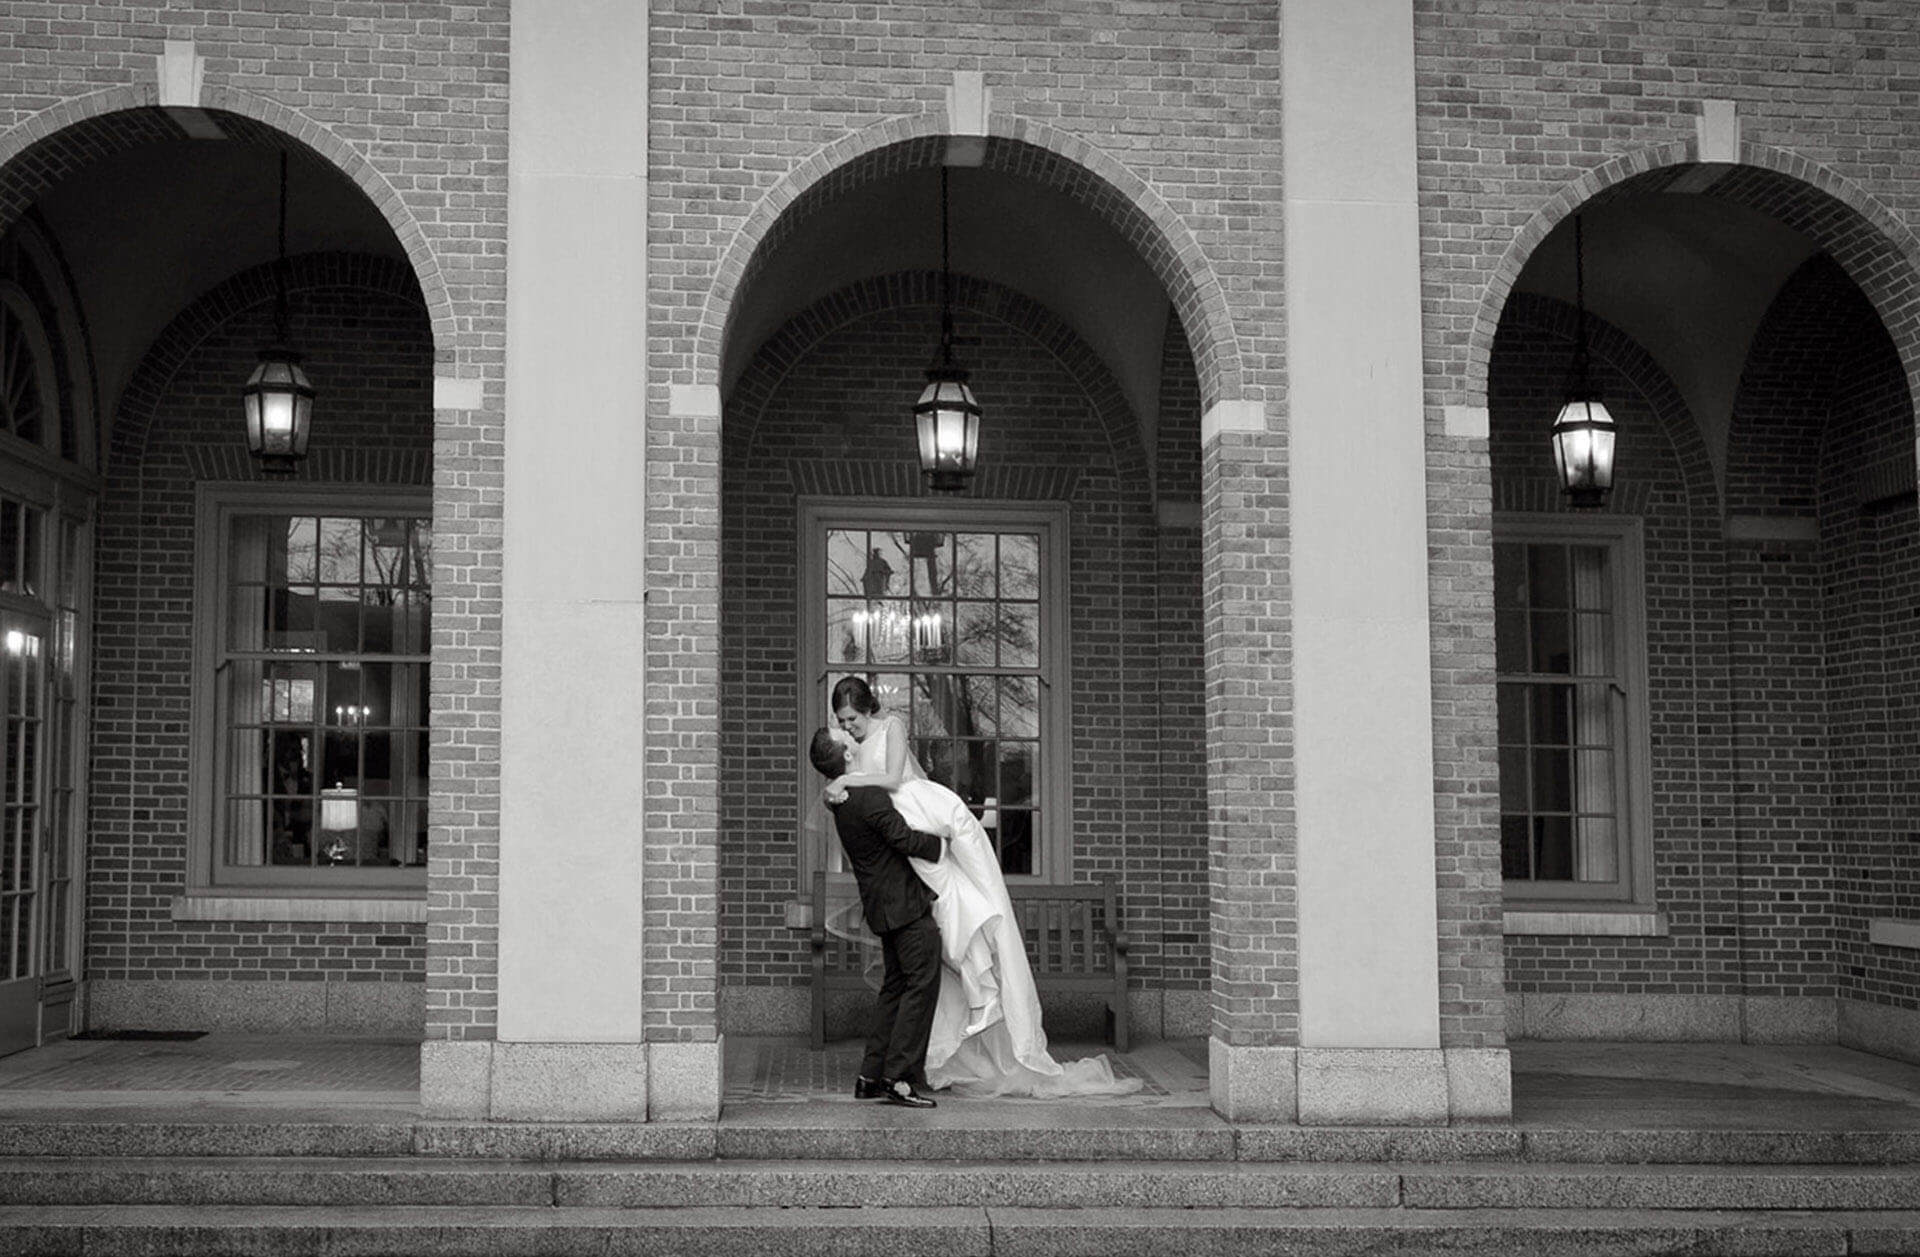 The bride and groom kiss in front of the Dearborn Inn in Detroit, Michigan.